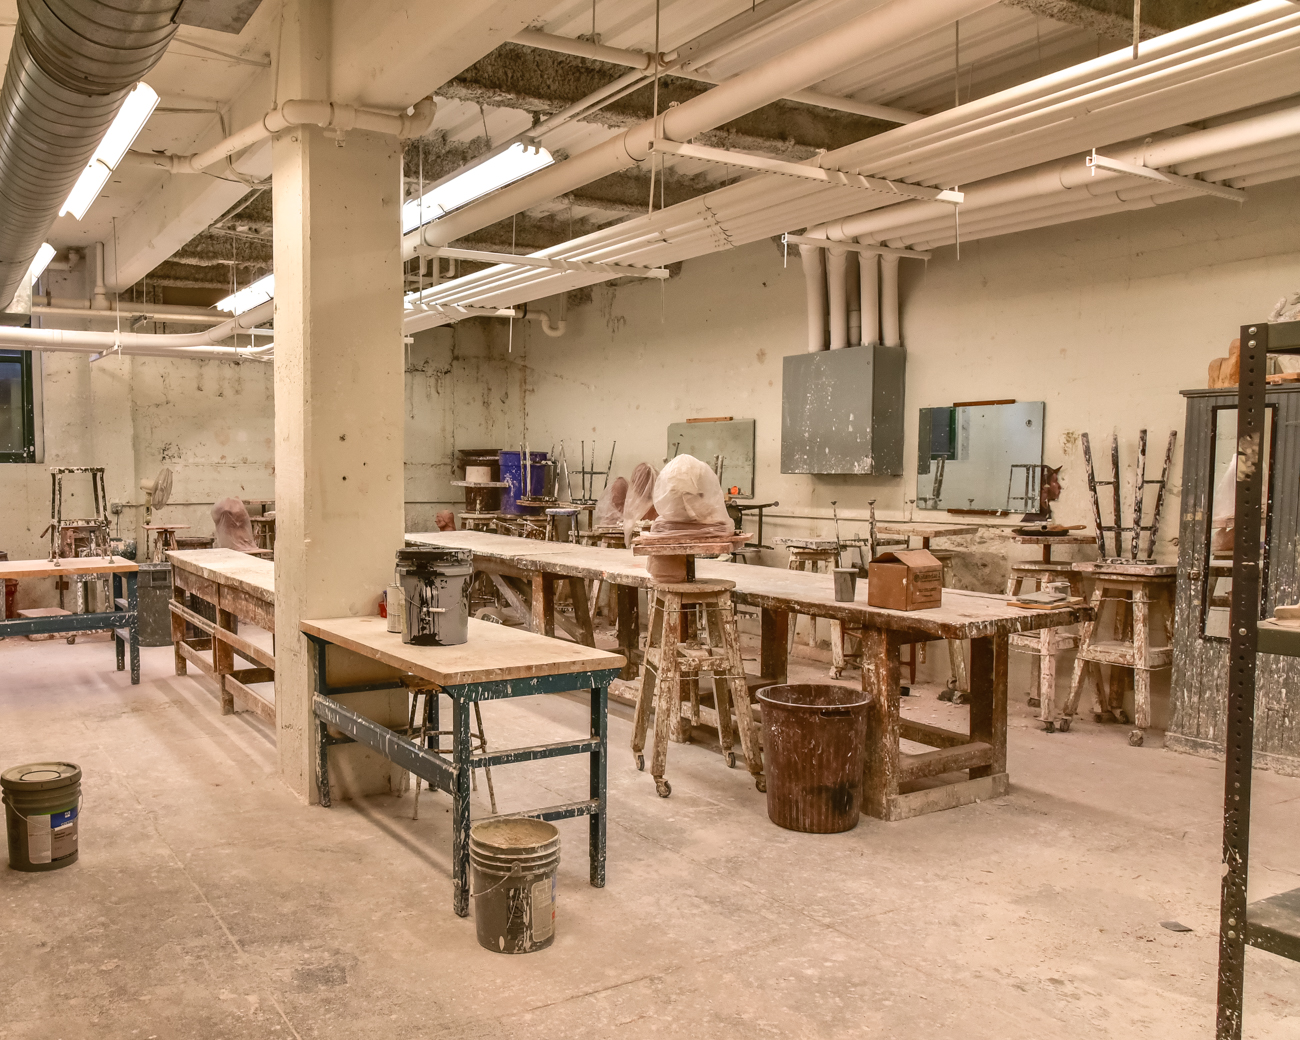 Ceramics, metalworking, framing, and sculpture workshops all occupy the basement level of the academy. / Image: Phil Armstrong, Cincinnati Refined // Published: 2.16.17